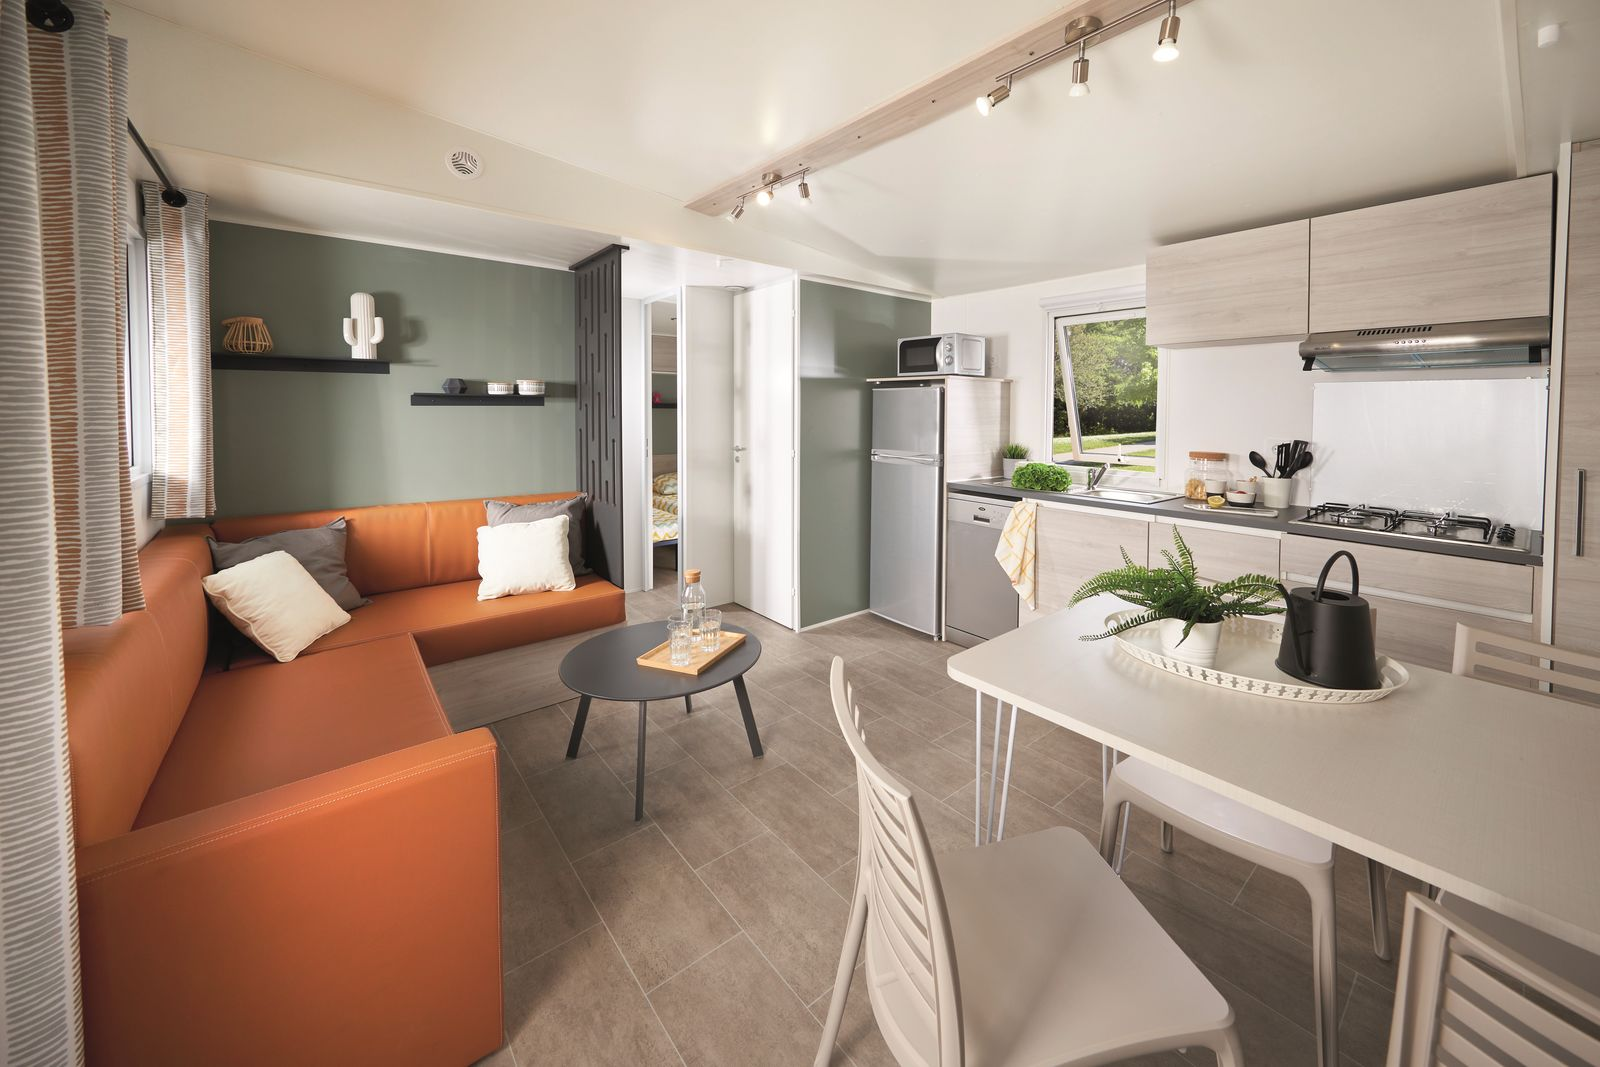 residences trigano-design-et-innovation-interieur-mobil-home